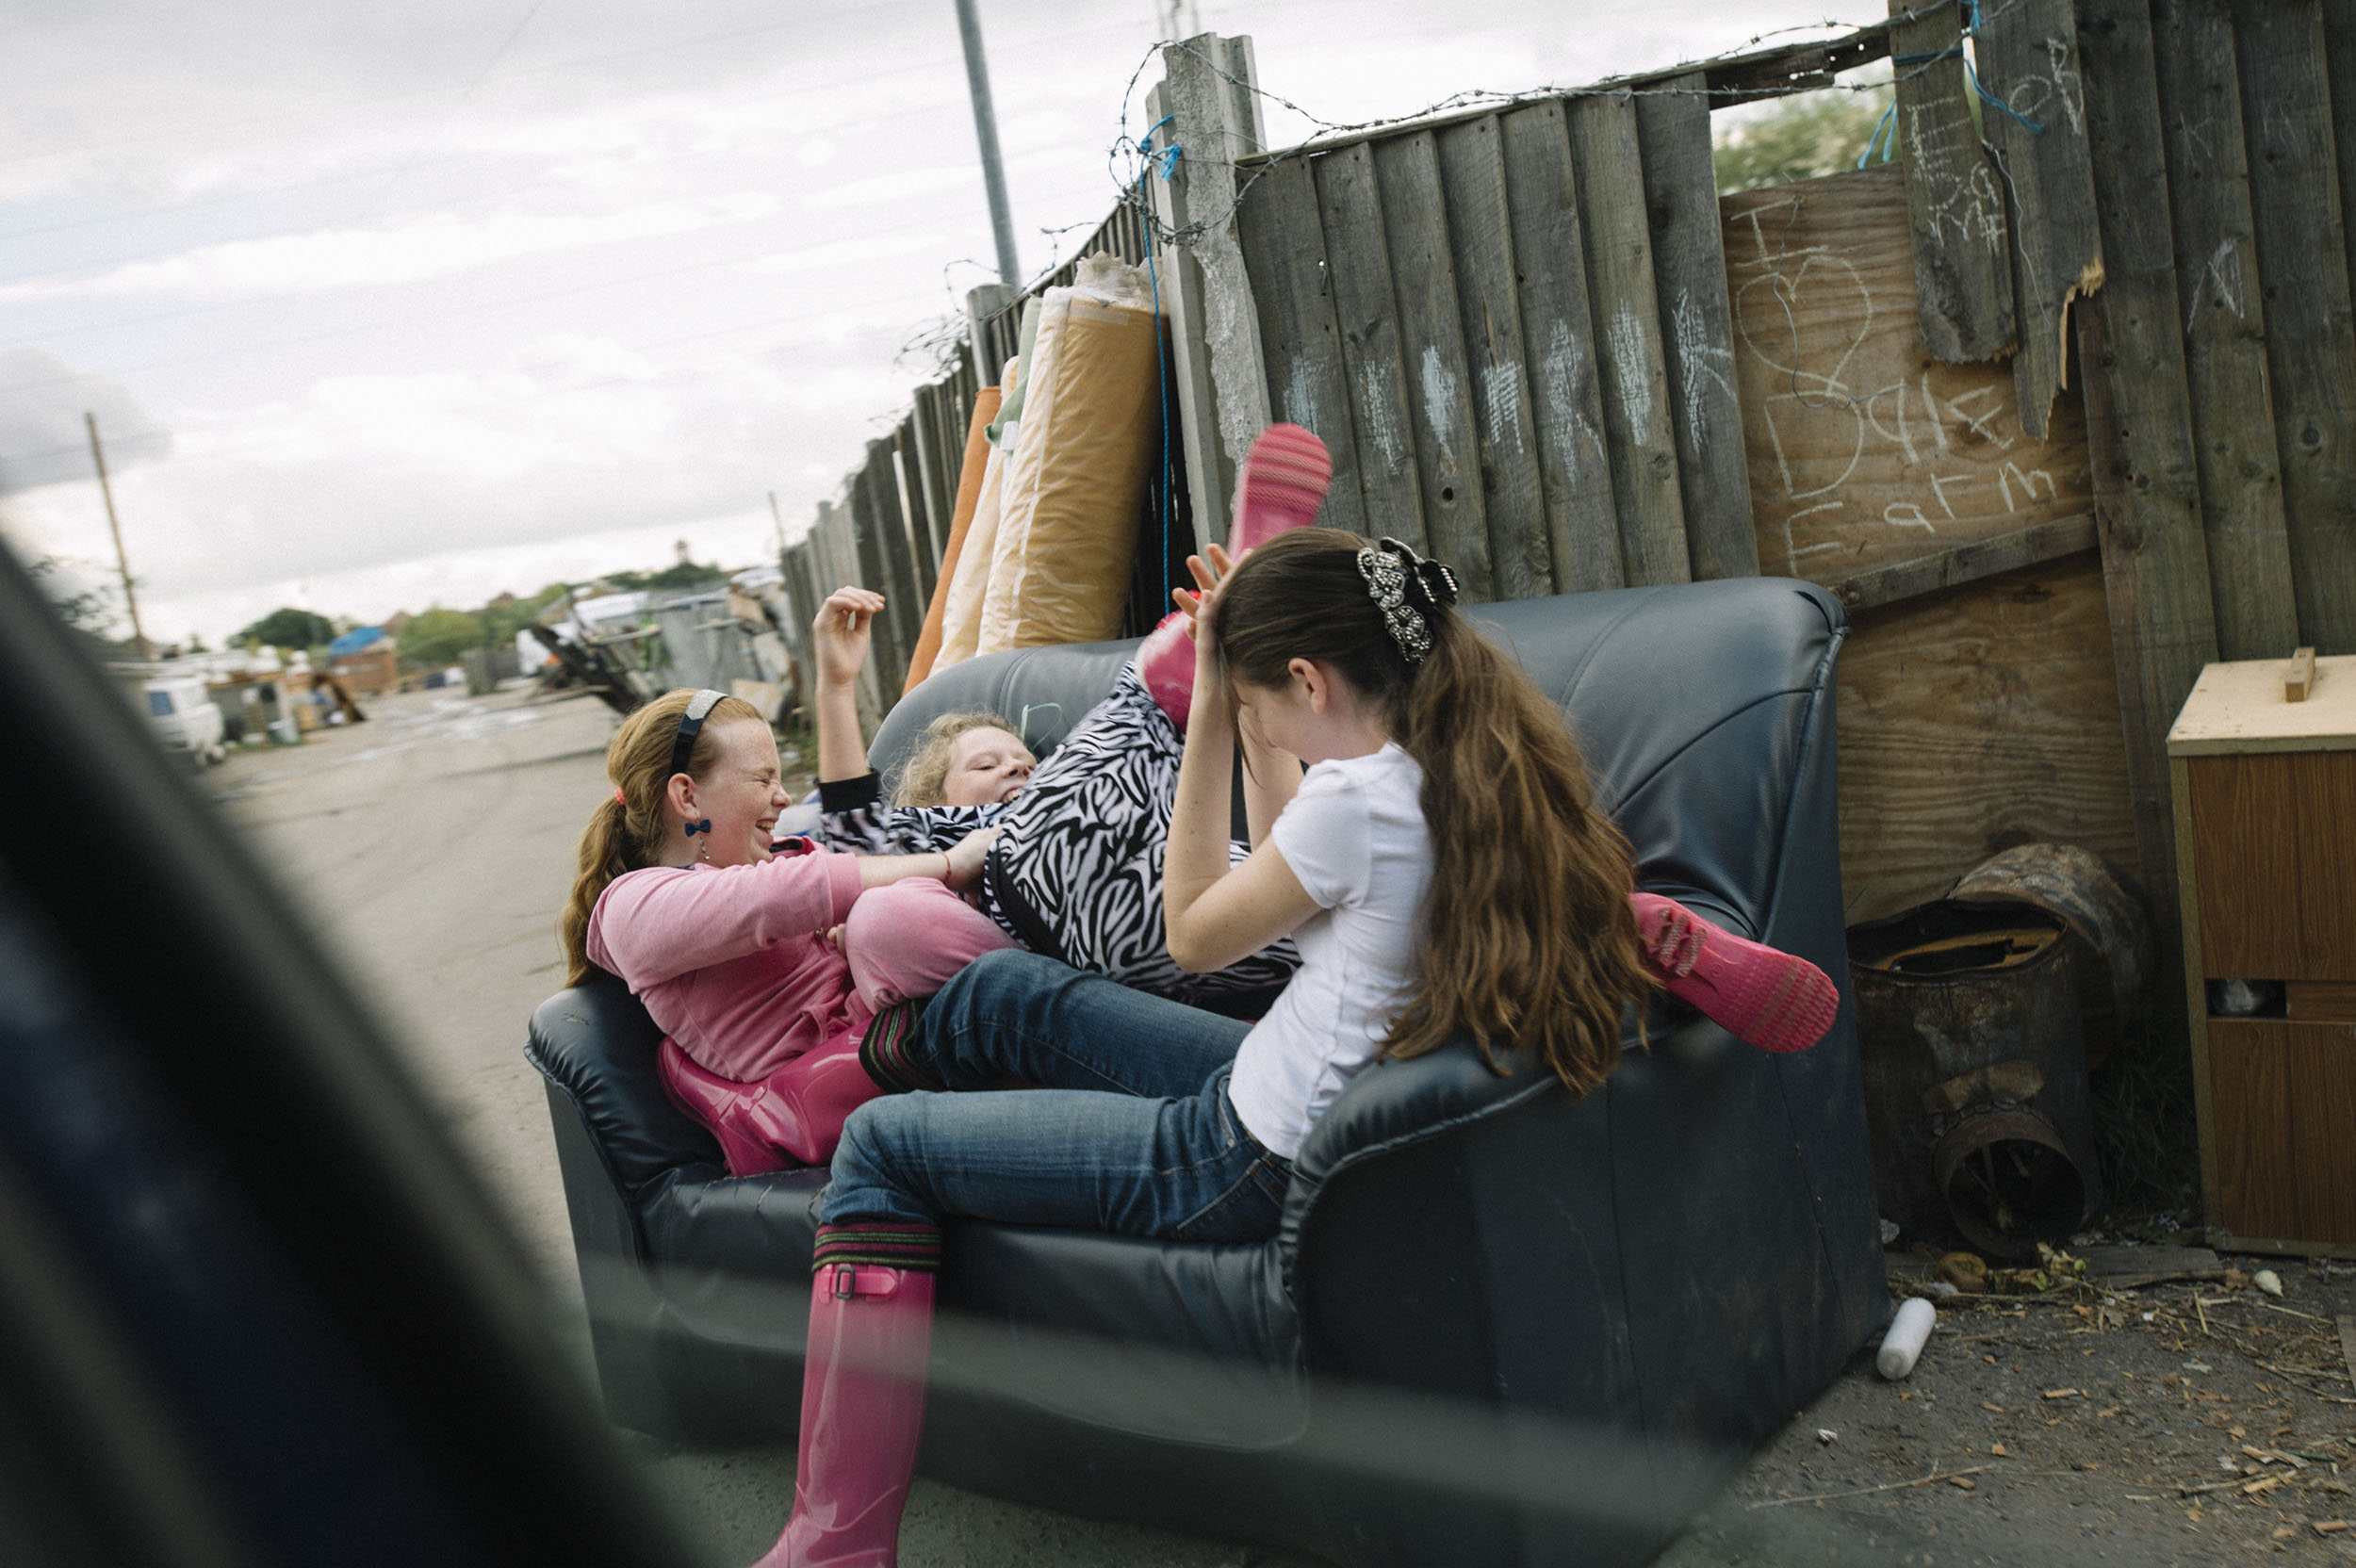 Younger residents play fight on an old sofa near the main gates to Dale Farm.